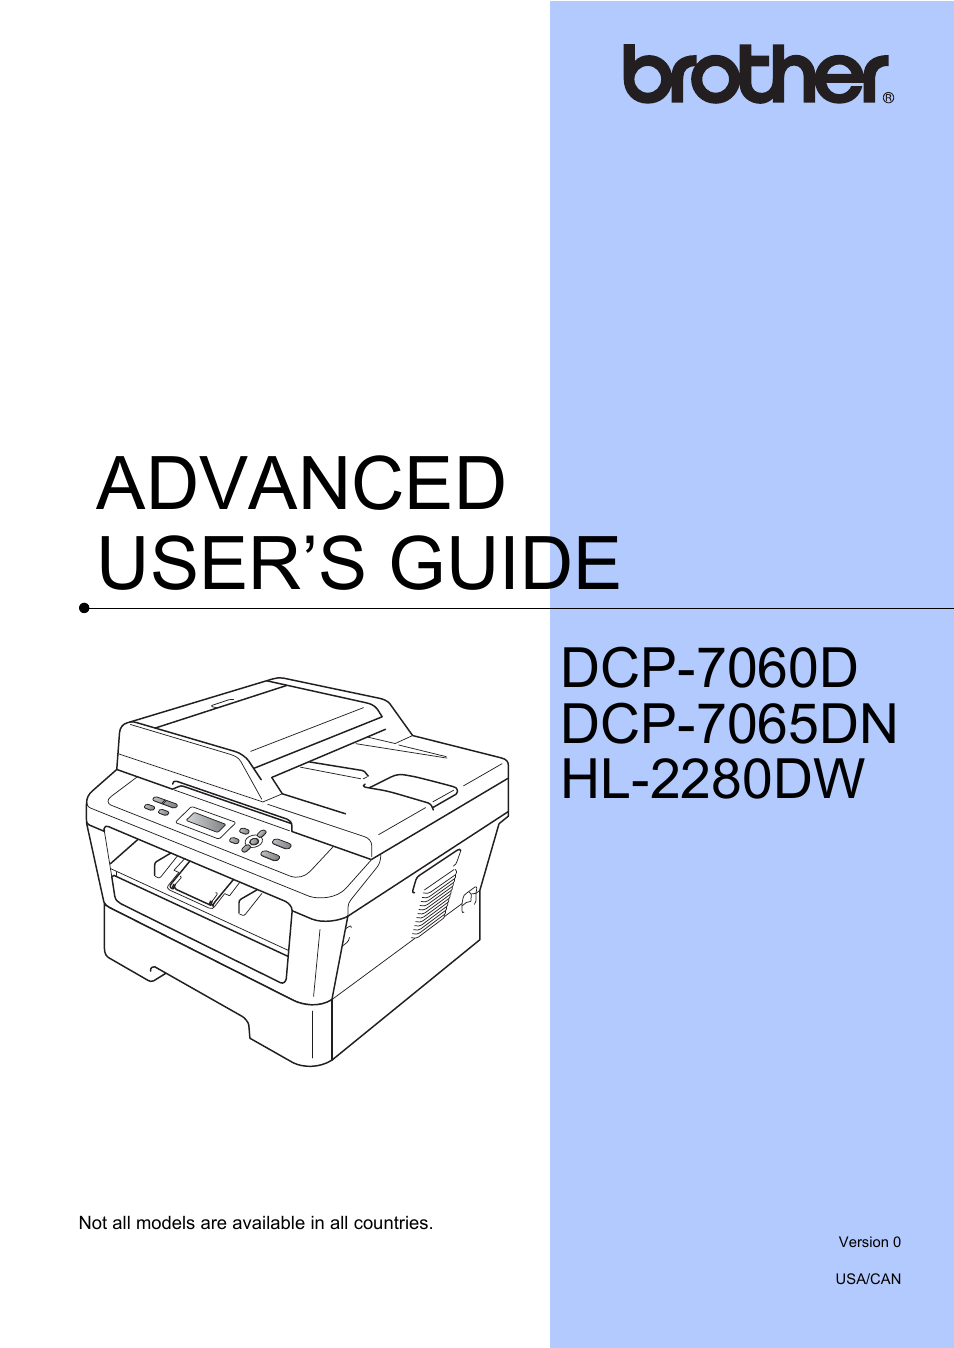 brother hl 2280dw user manual 33 pages also for dcp 7060d dcp rh manualsdir com brother hl-2280dw manual feed brother hl 2380dw manual